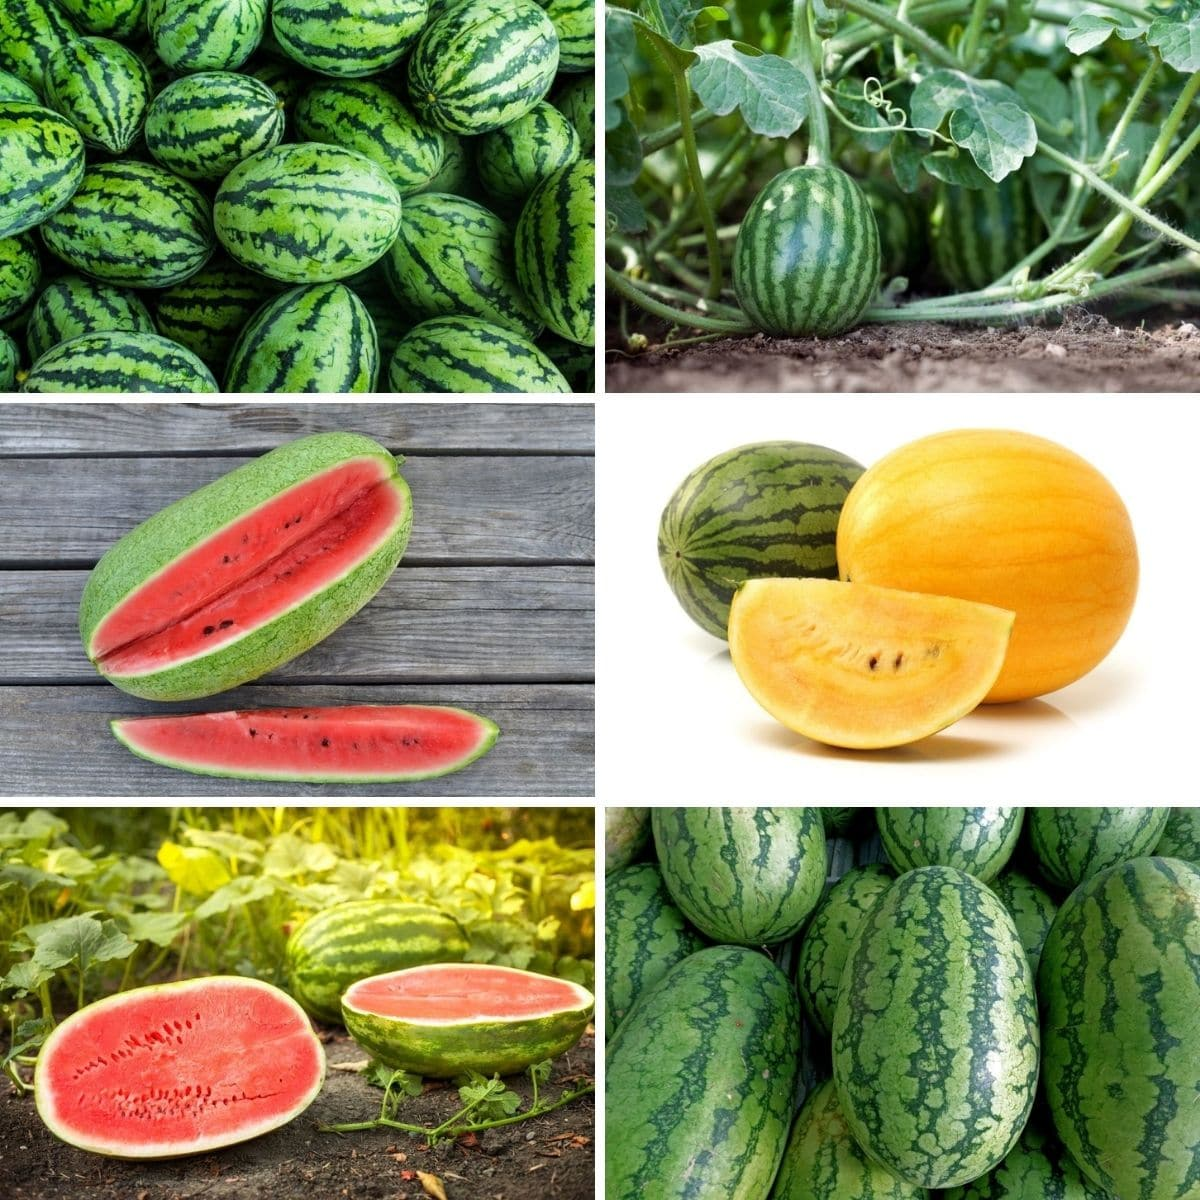 10 Best Kinds of Watermelon to Grow